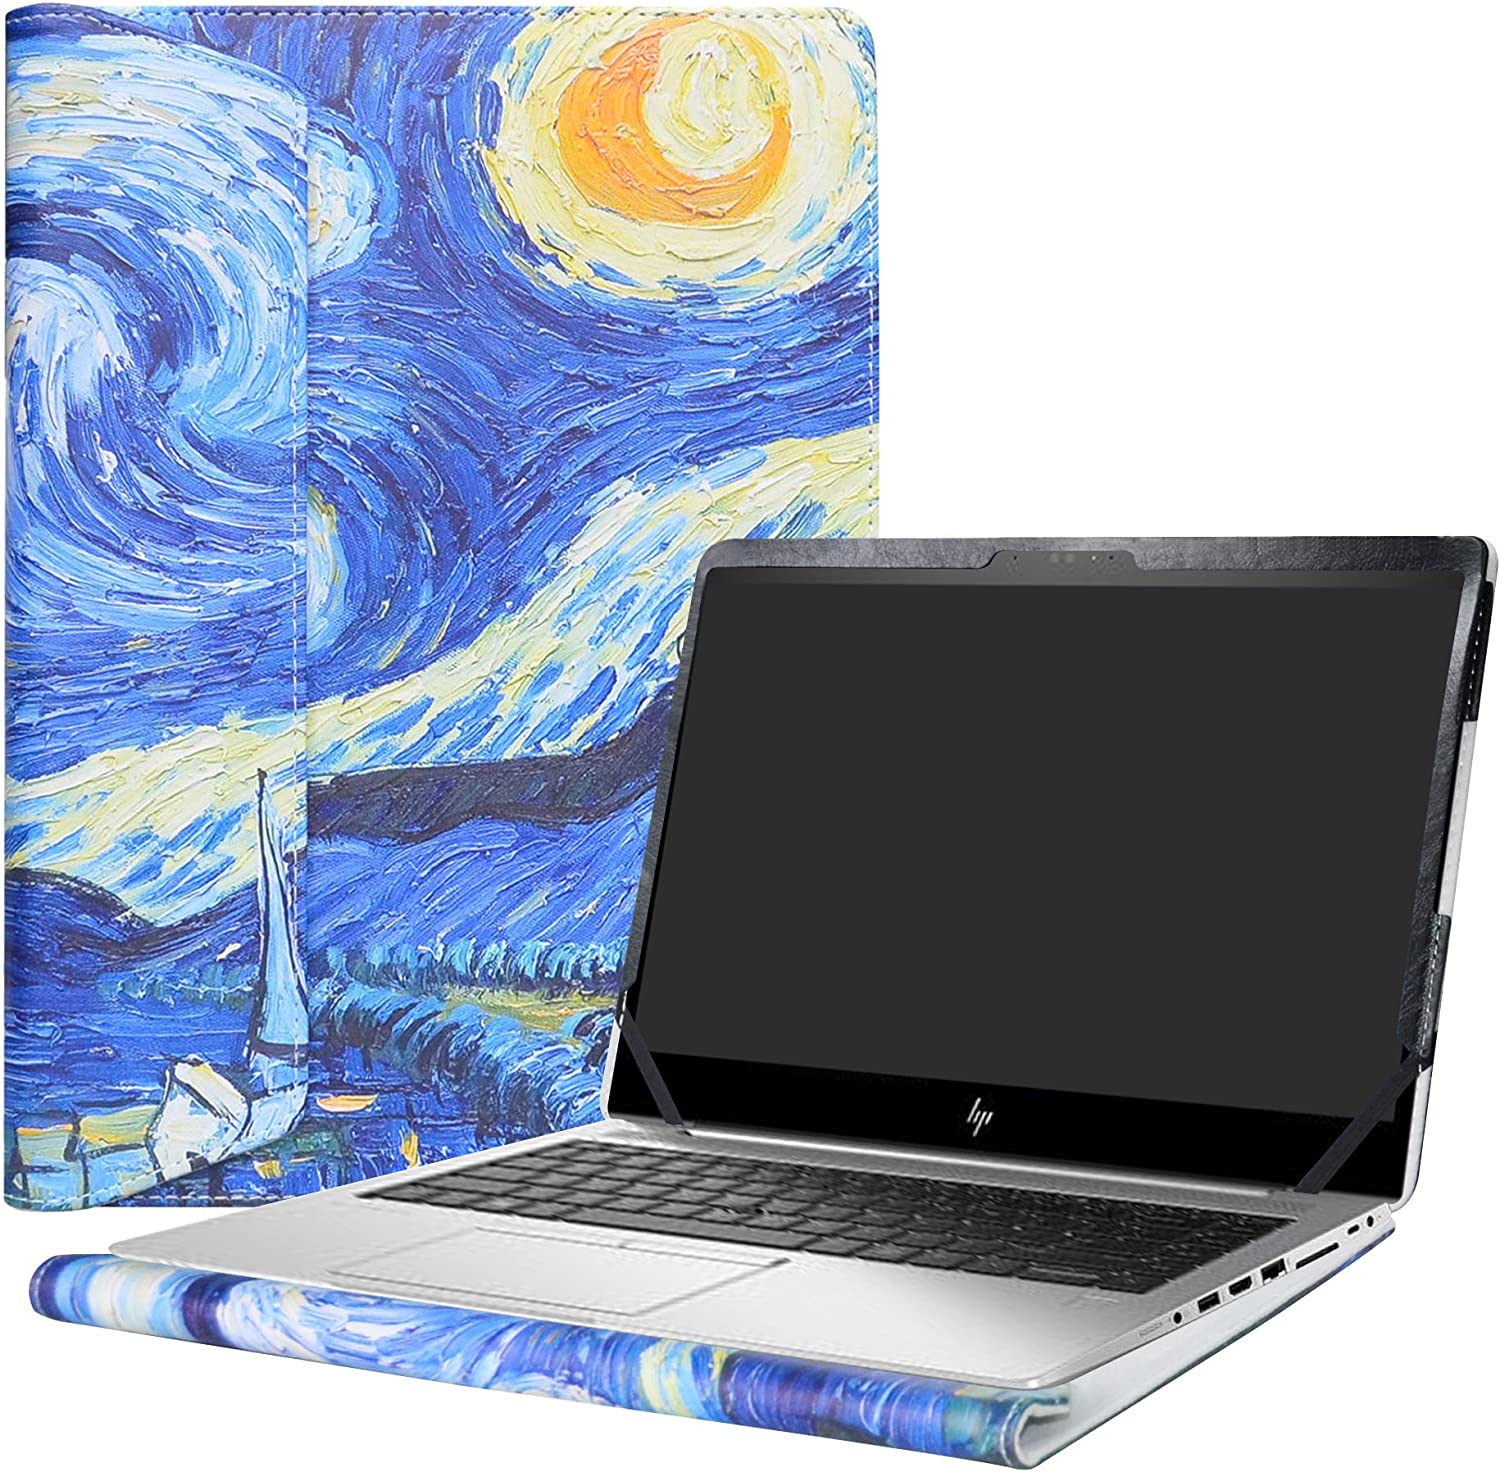 "Alapmk Protective Case Cover For 14"" HP EliteBook 840 G5 G6/EliteBook 745 G5 G6/ZBook 14u G5 G6 Laptop(Note:Not fit EliteBook 840 745 G4 G3 G2 G1/ZBook 14u G4/ZBook 14 G2/ZBook 14 G1),Starry Night"